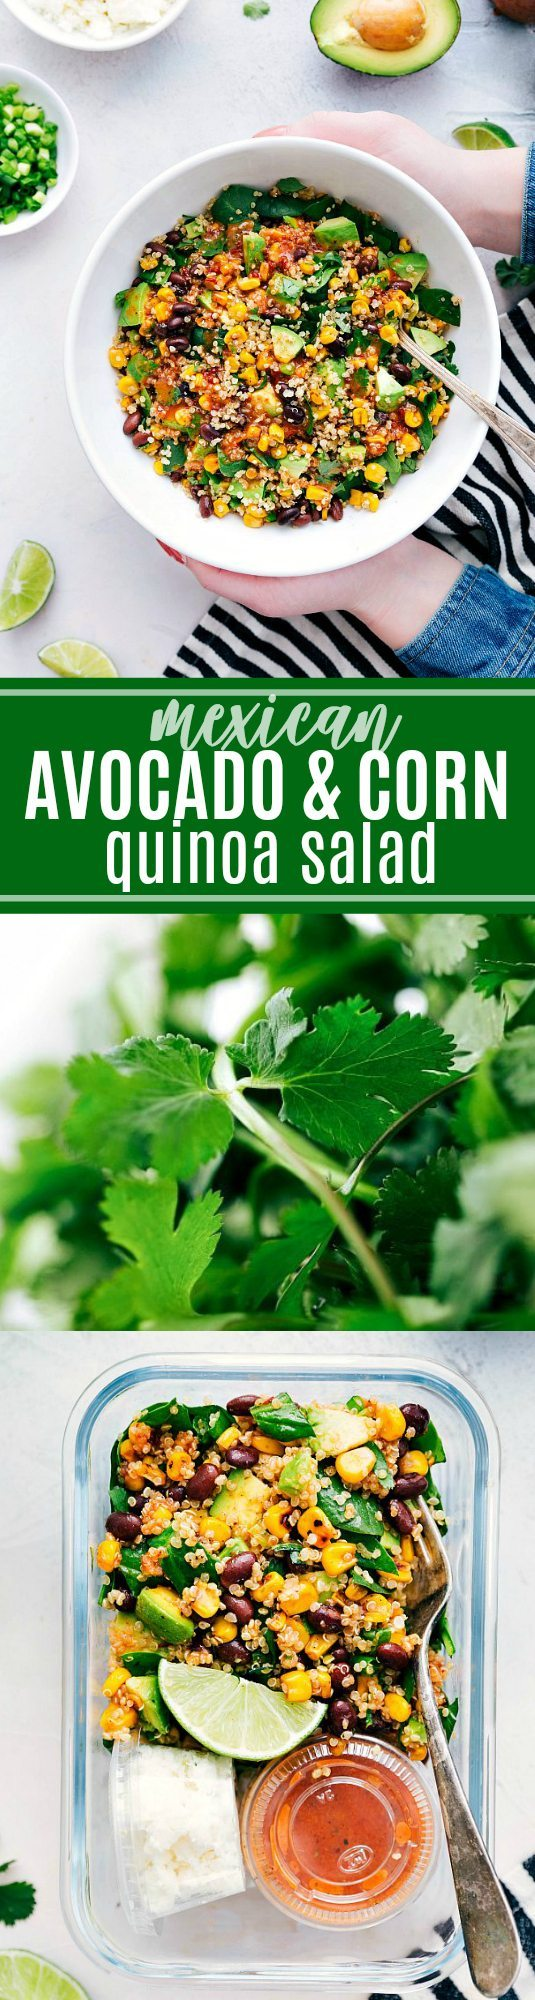 A healthy Mexican-flavor inspired avocado and corn quinoa salad packed with veggies and coated in the most delicious chipotle vinaigrette | chelseasmessyapron.com | #quinoa #salad #healthy #easy #vegetarian #quick #chipotle #dressing #spinach #health #Mexican #corn #avocado